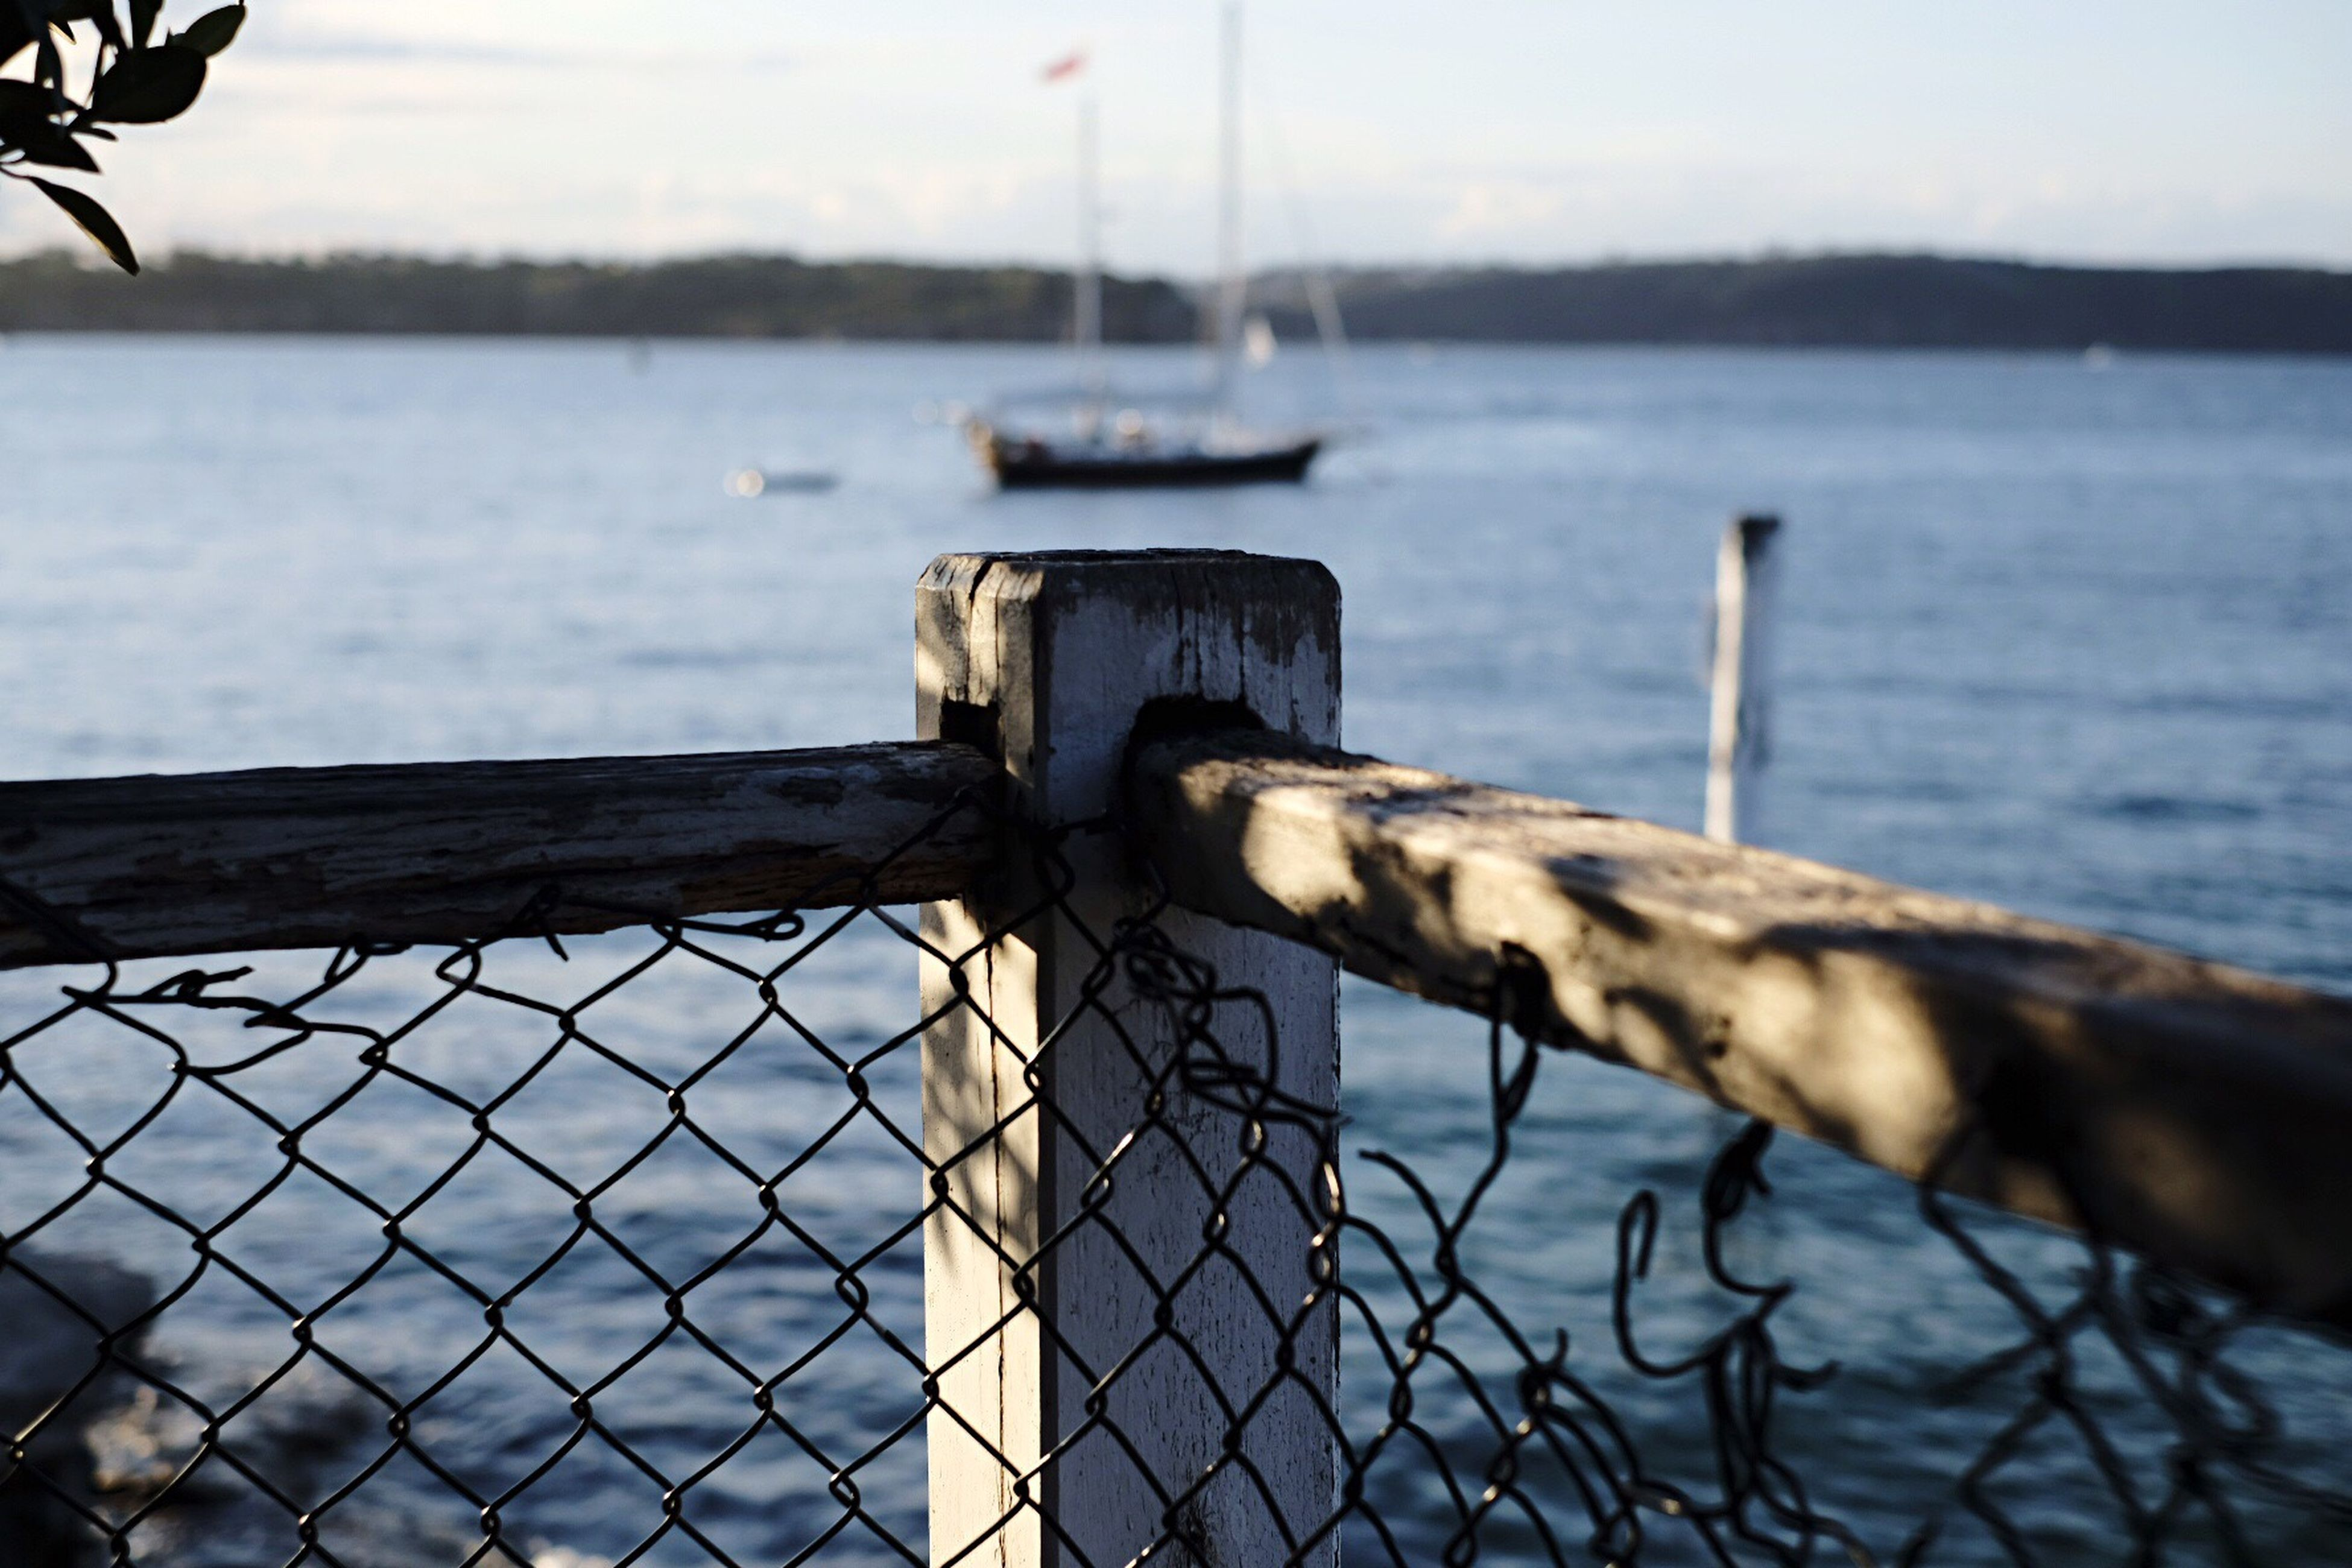 Fence Water Boat Foreground Background Depthoffield Waves Ocean